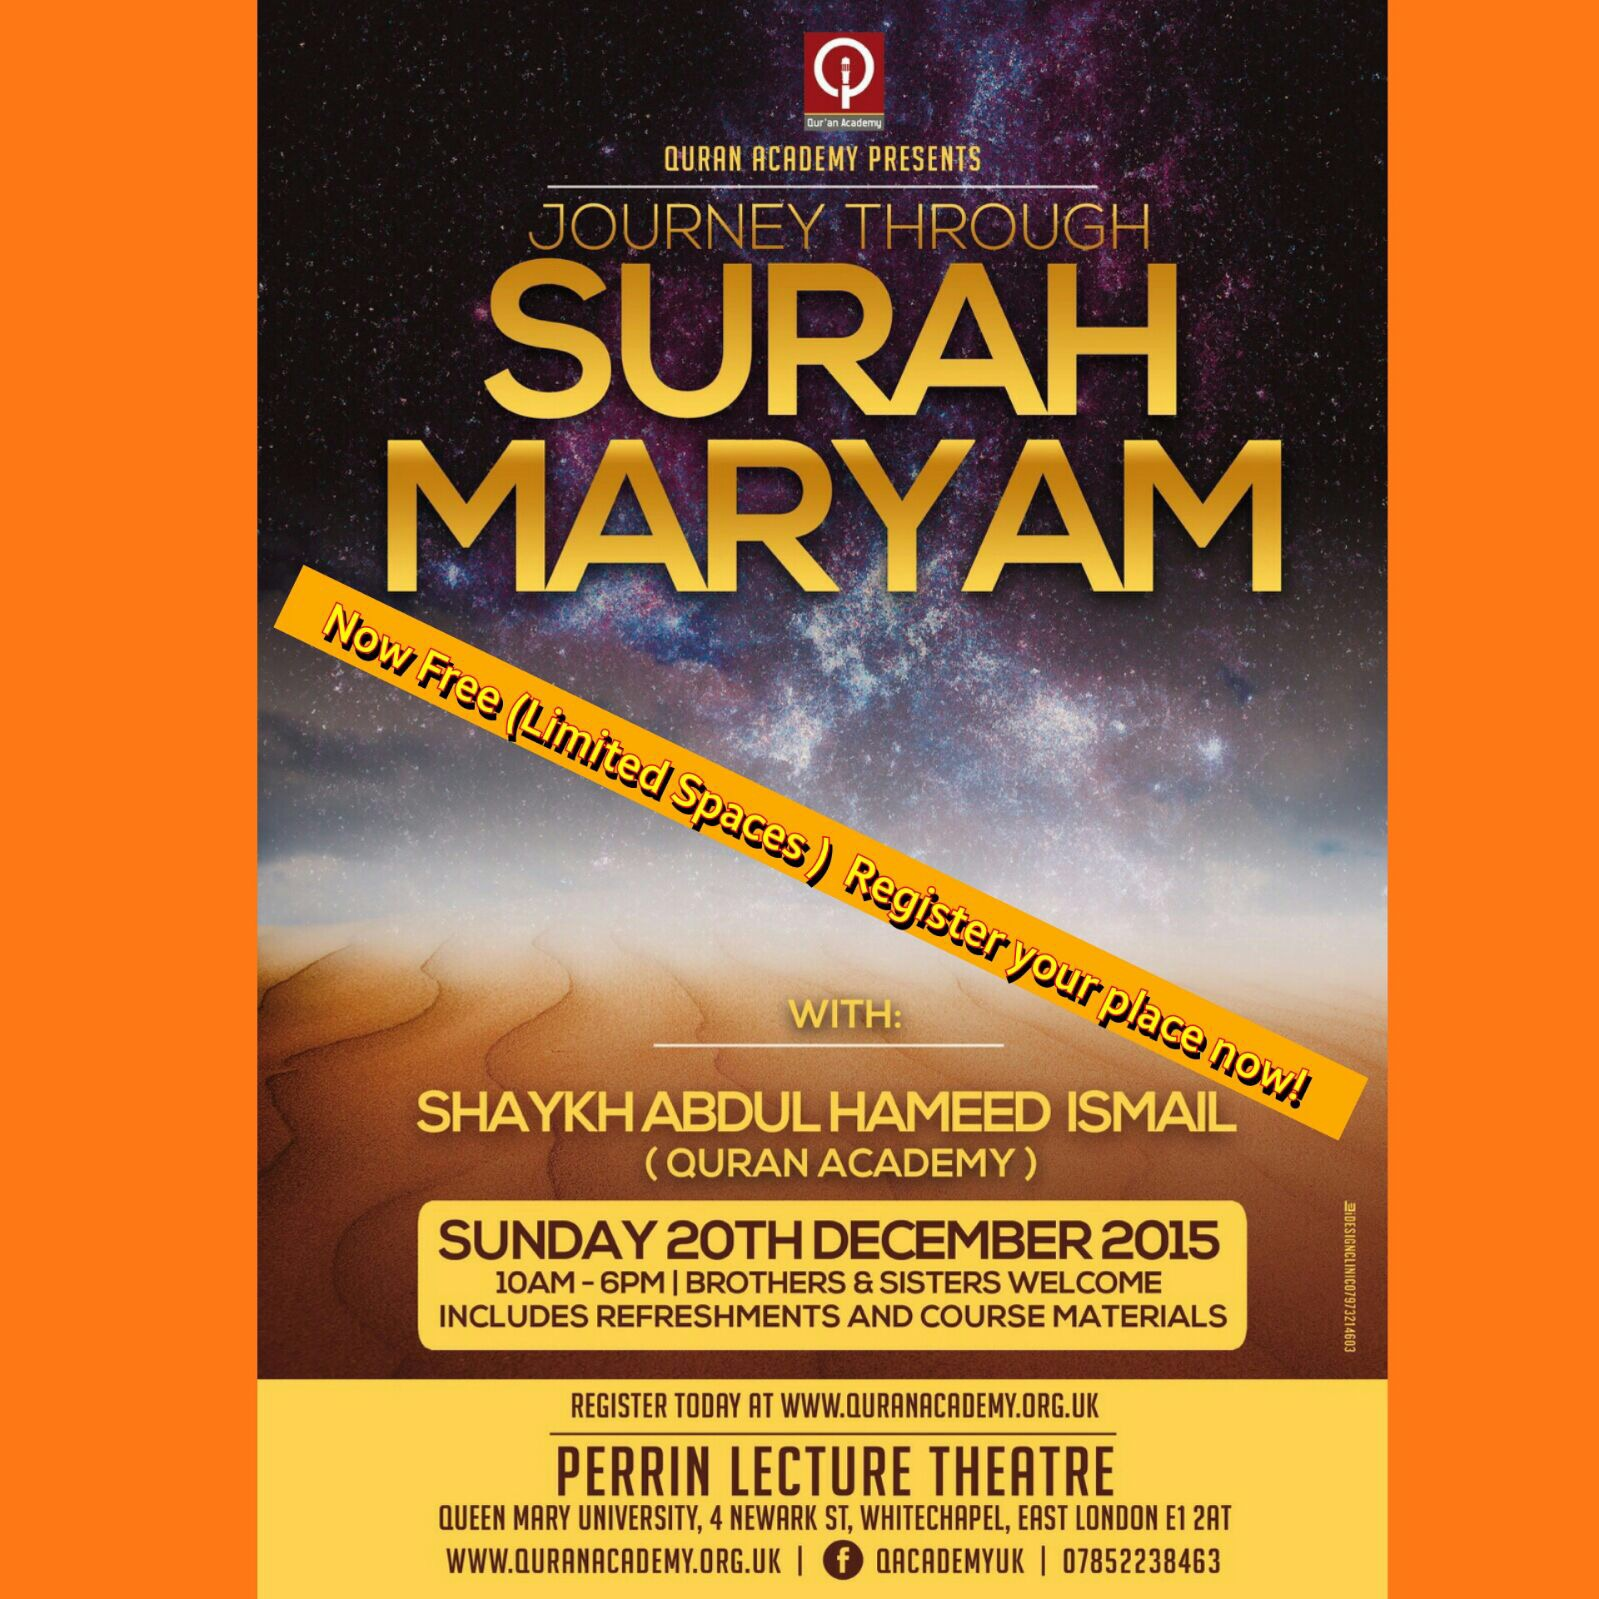 Event : 20th December 2015 in E1 : Shaykh Abdul Hameed Ismail